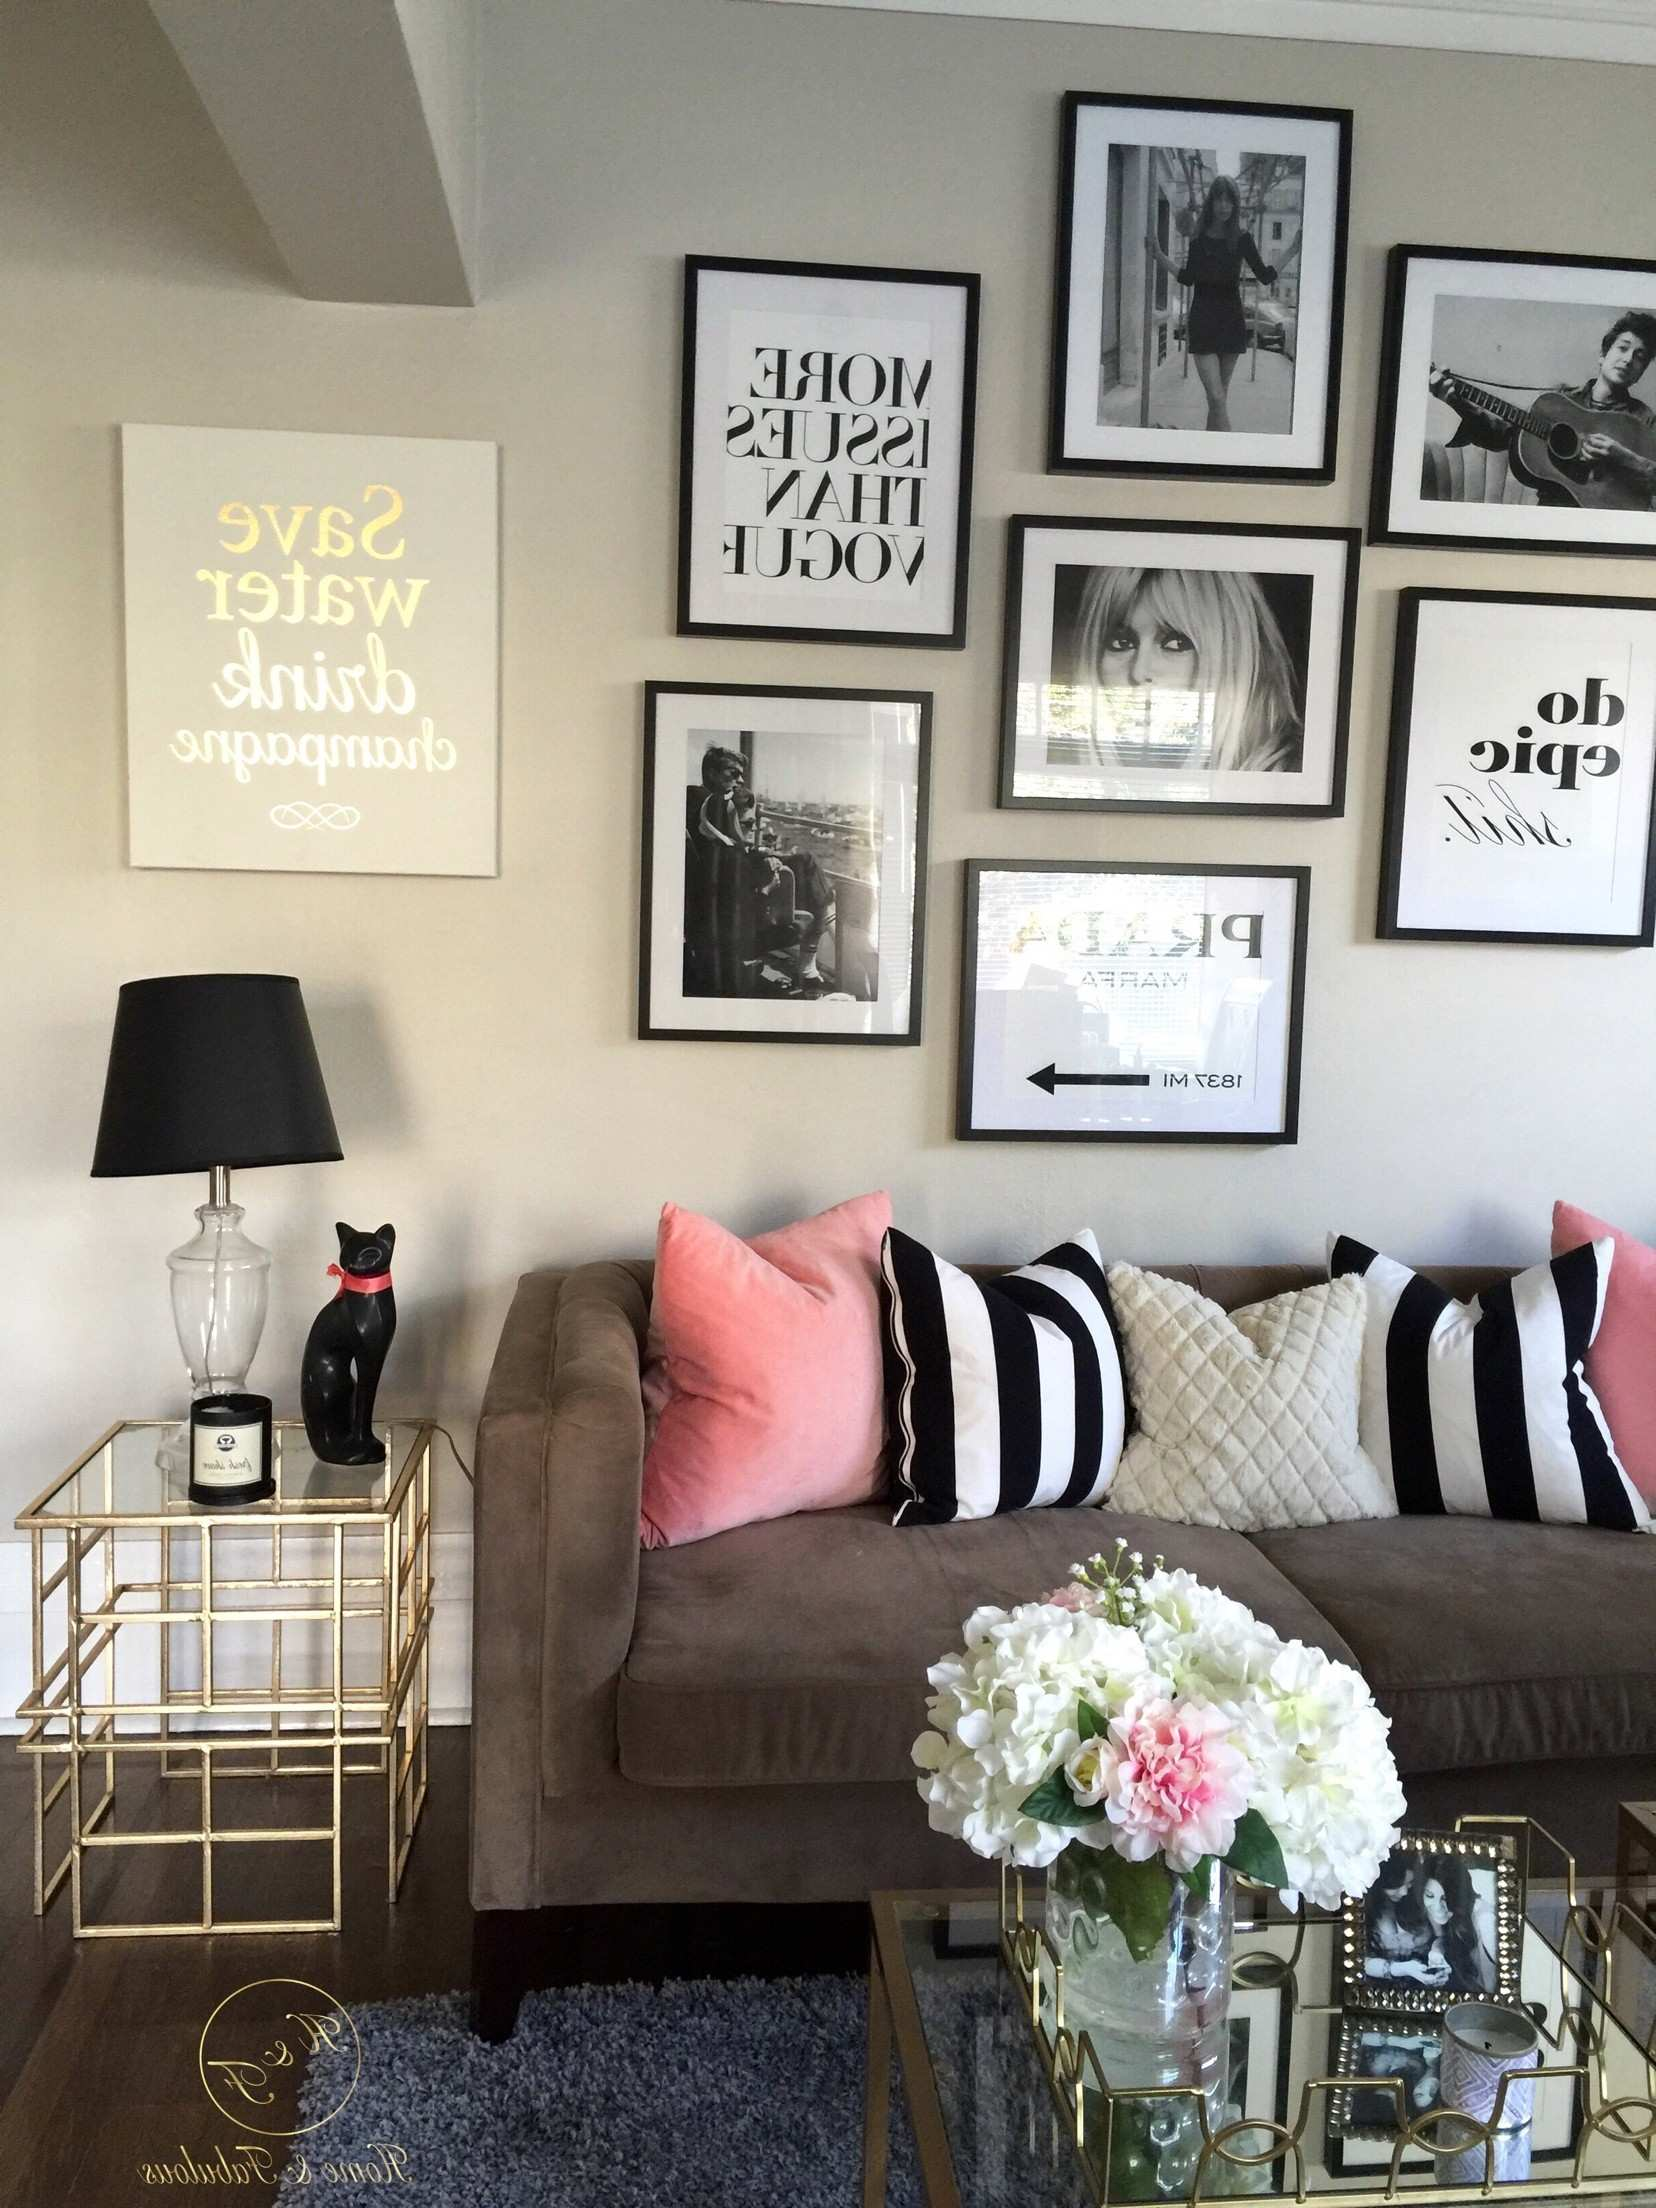 Displaying Gallery of Homegoods Wall Art View 9 of 15 s